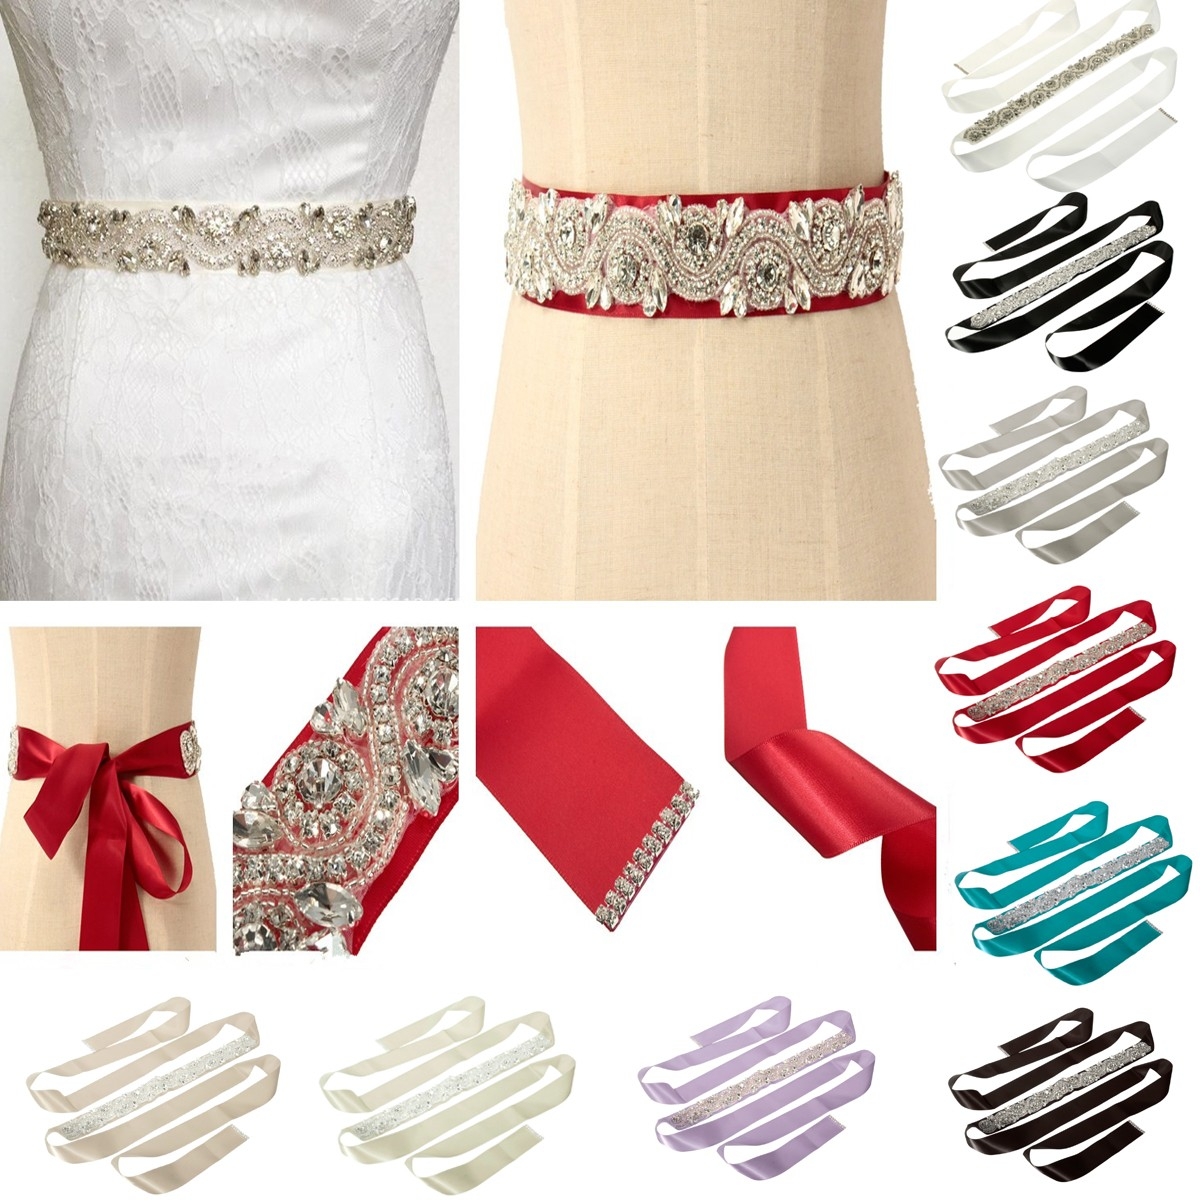 Bride Rhinestone Bead Ribbon Elegant Party Dress Sash Belt Wedding Cocktail Dress Accessories